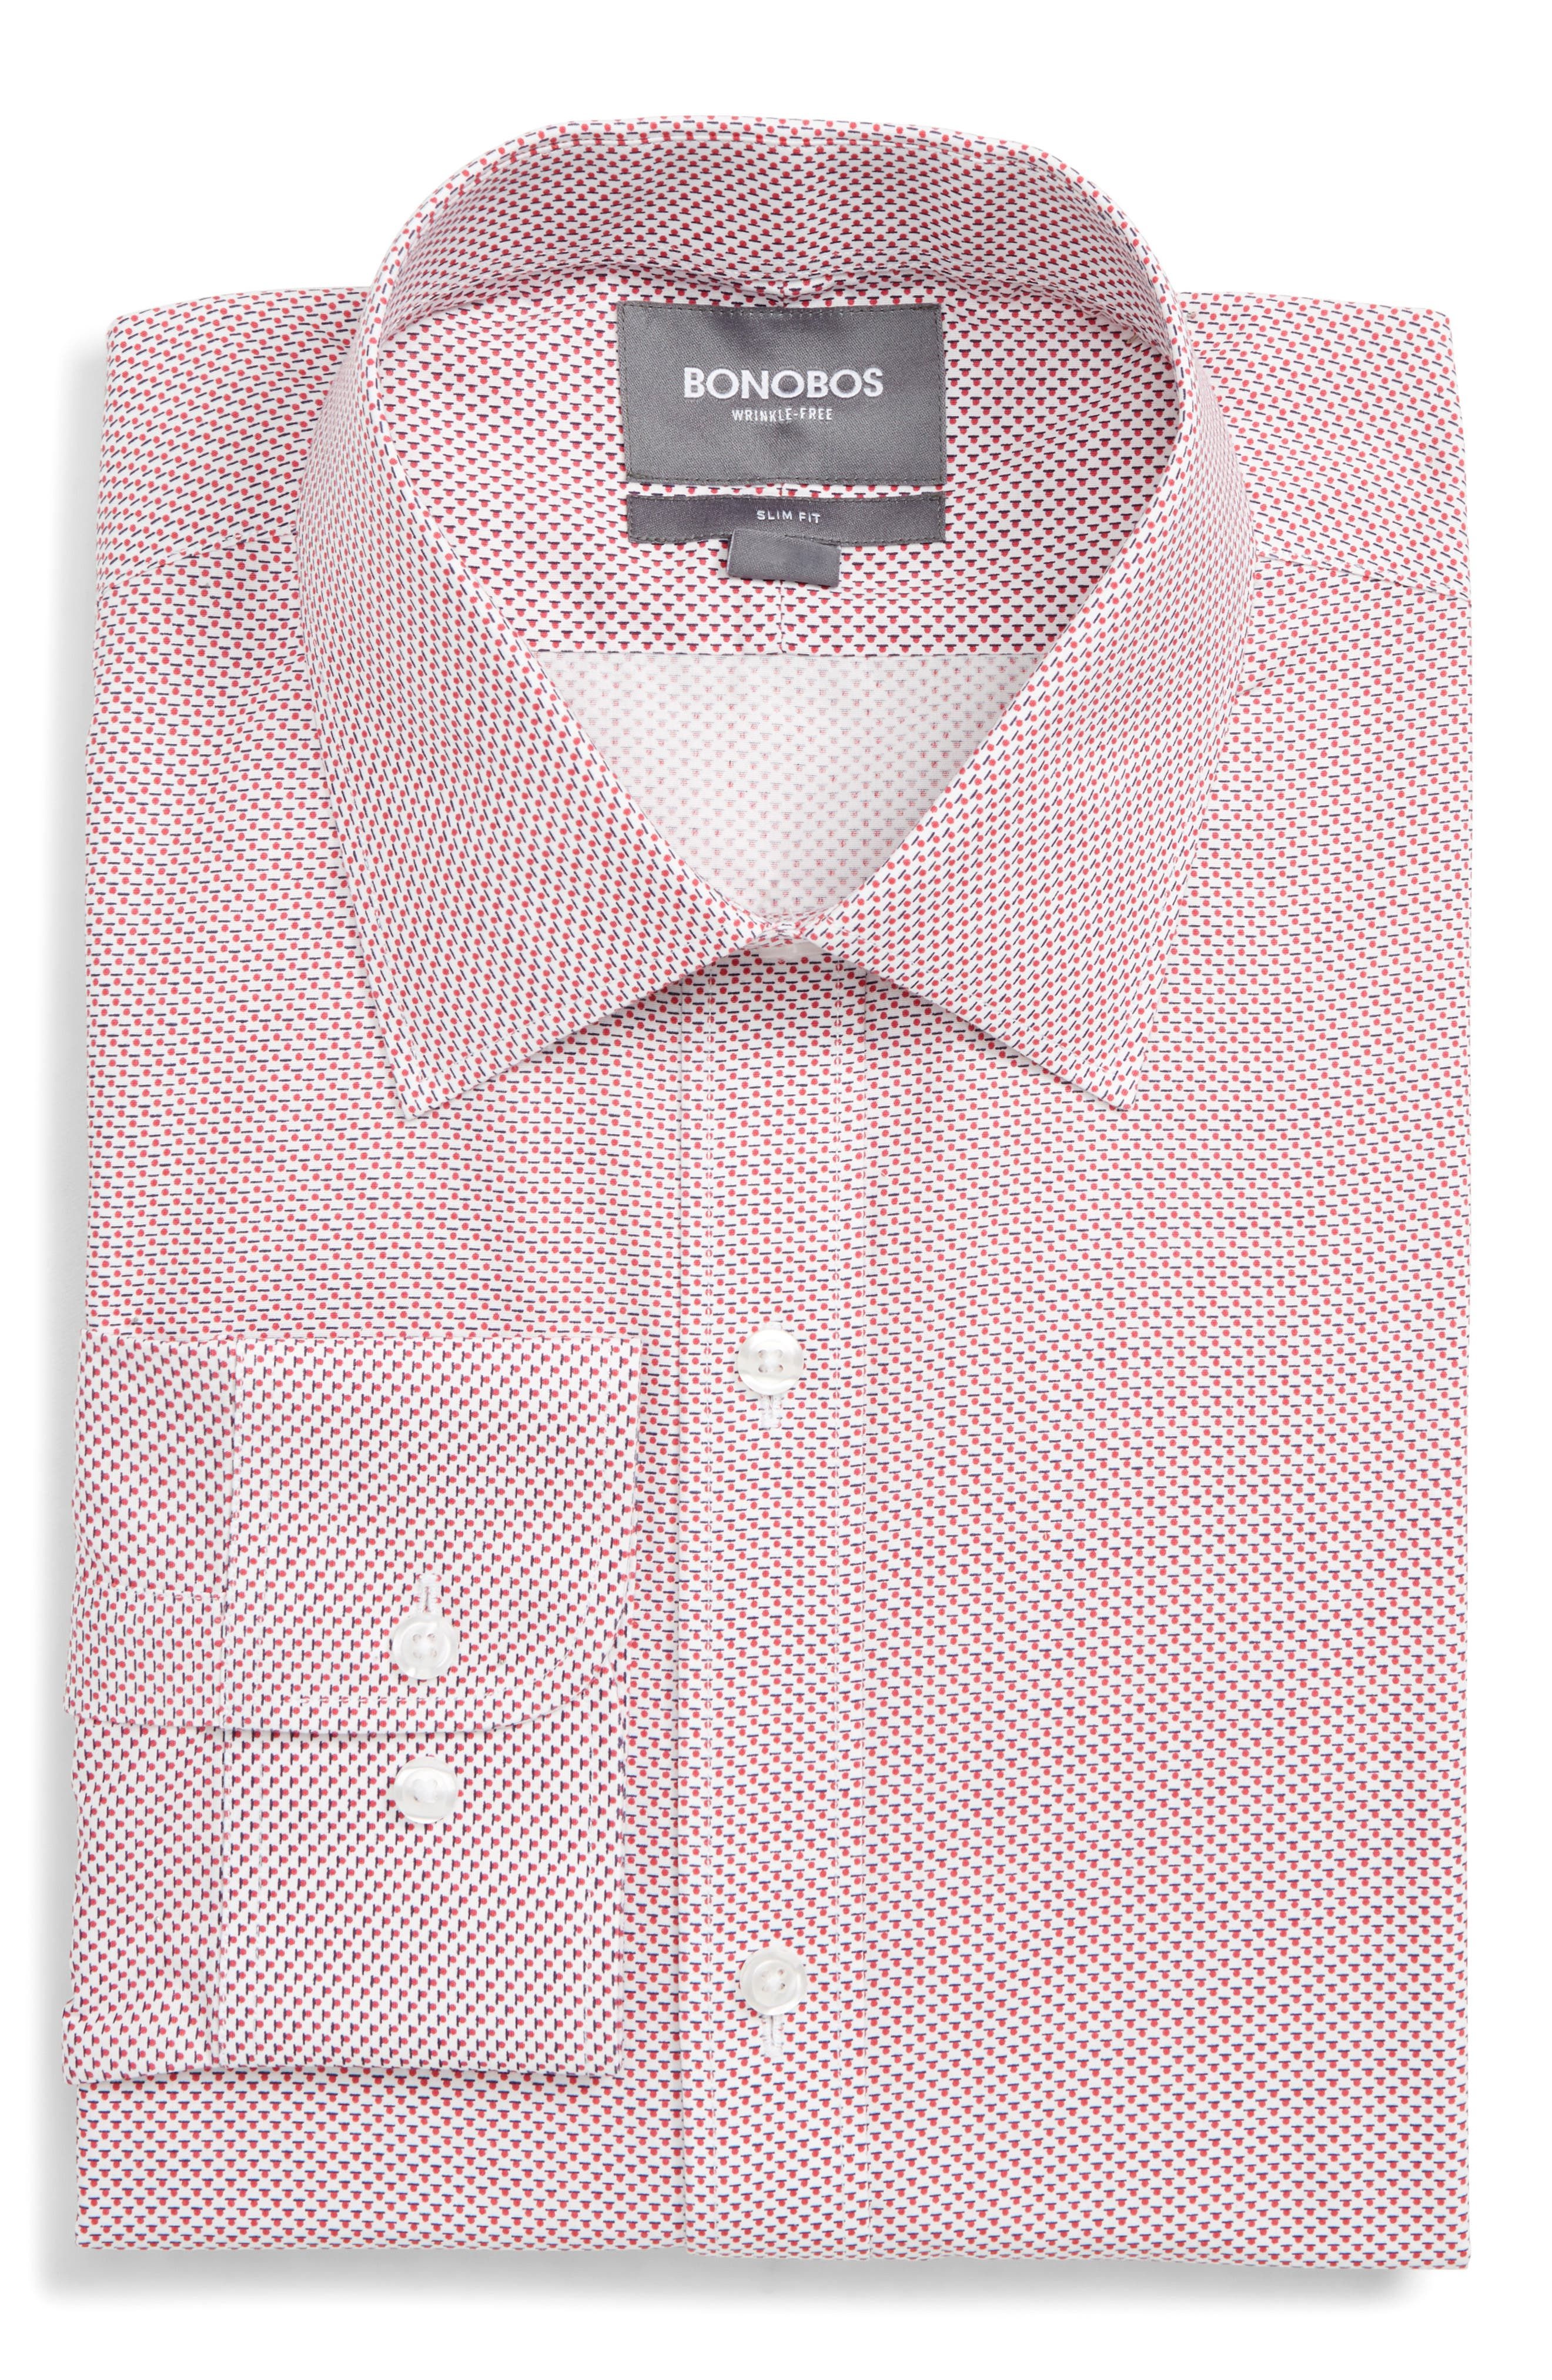 Bonobos Daily Grind Slim Fit Print Dress Shirt